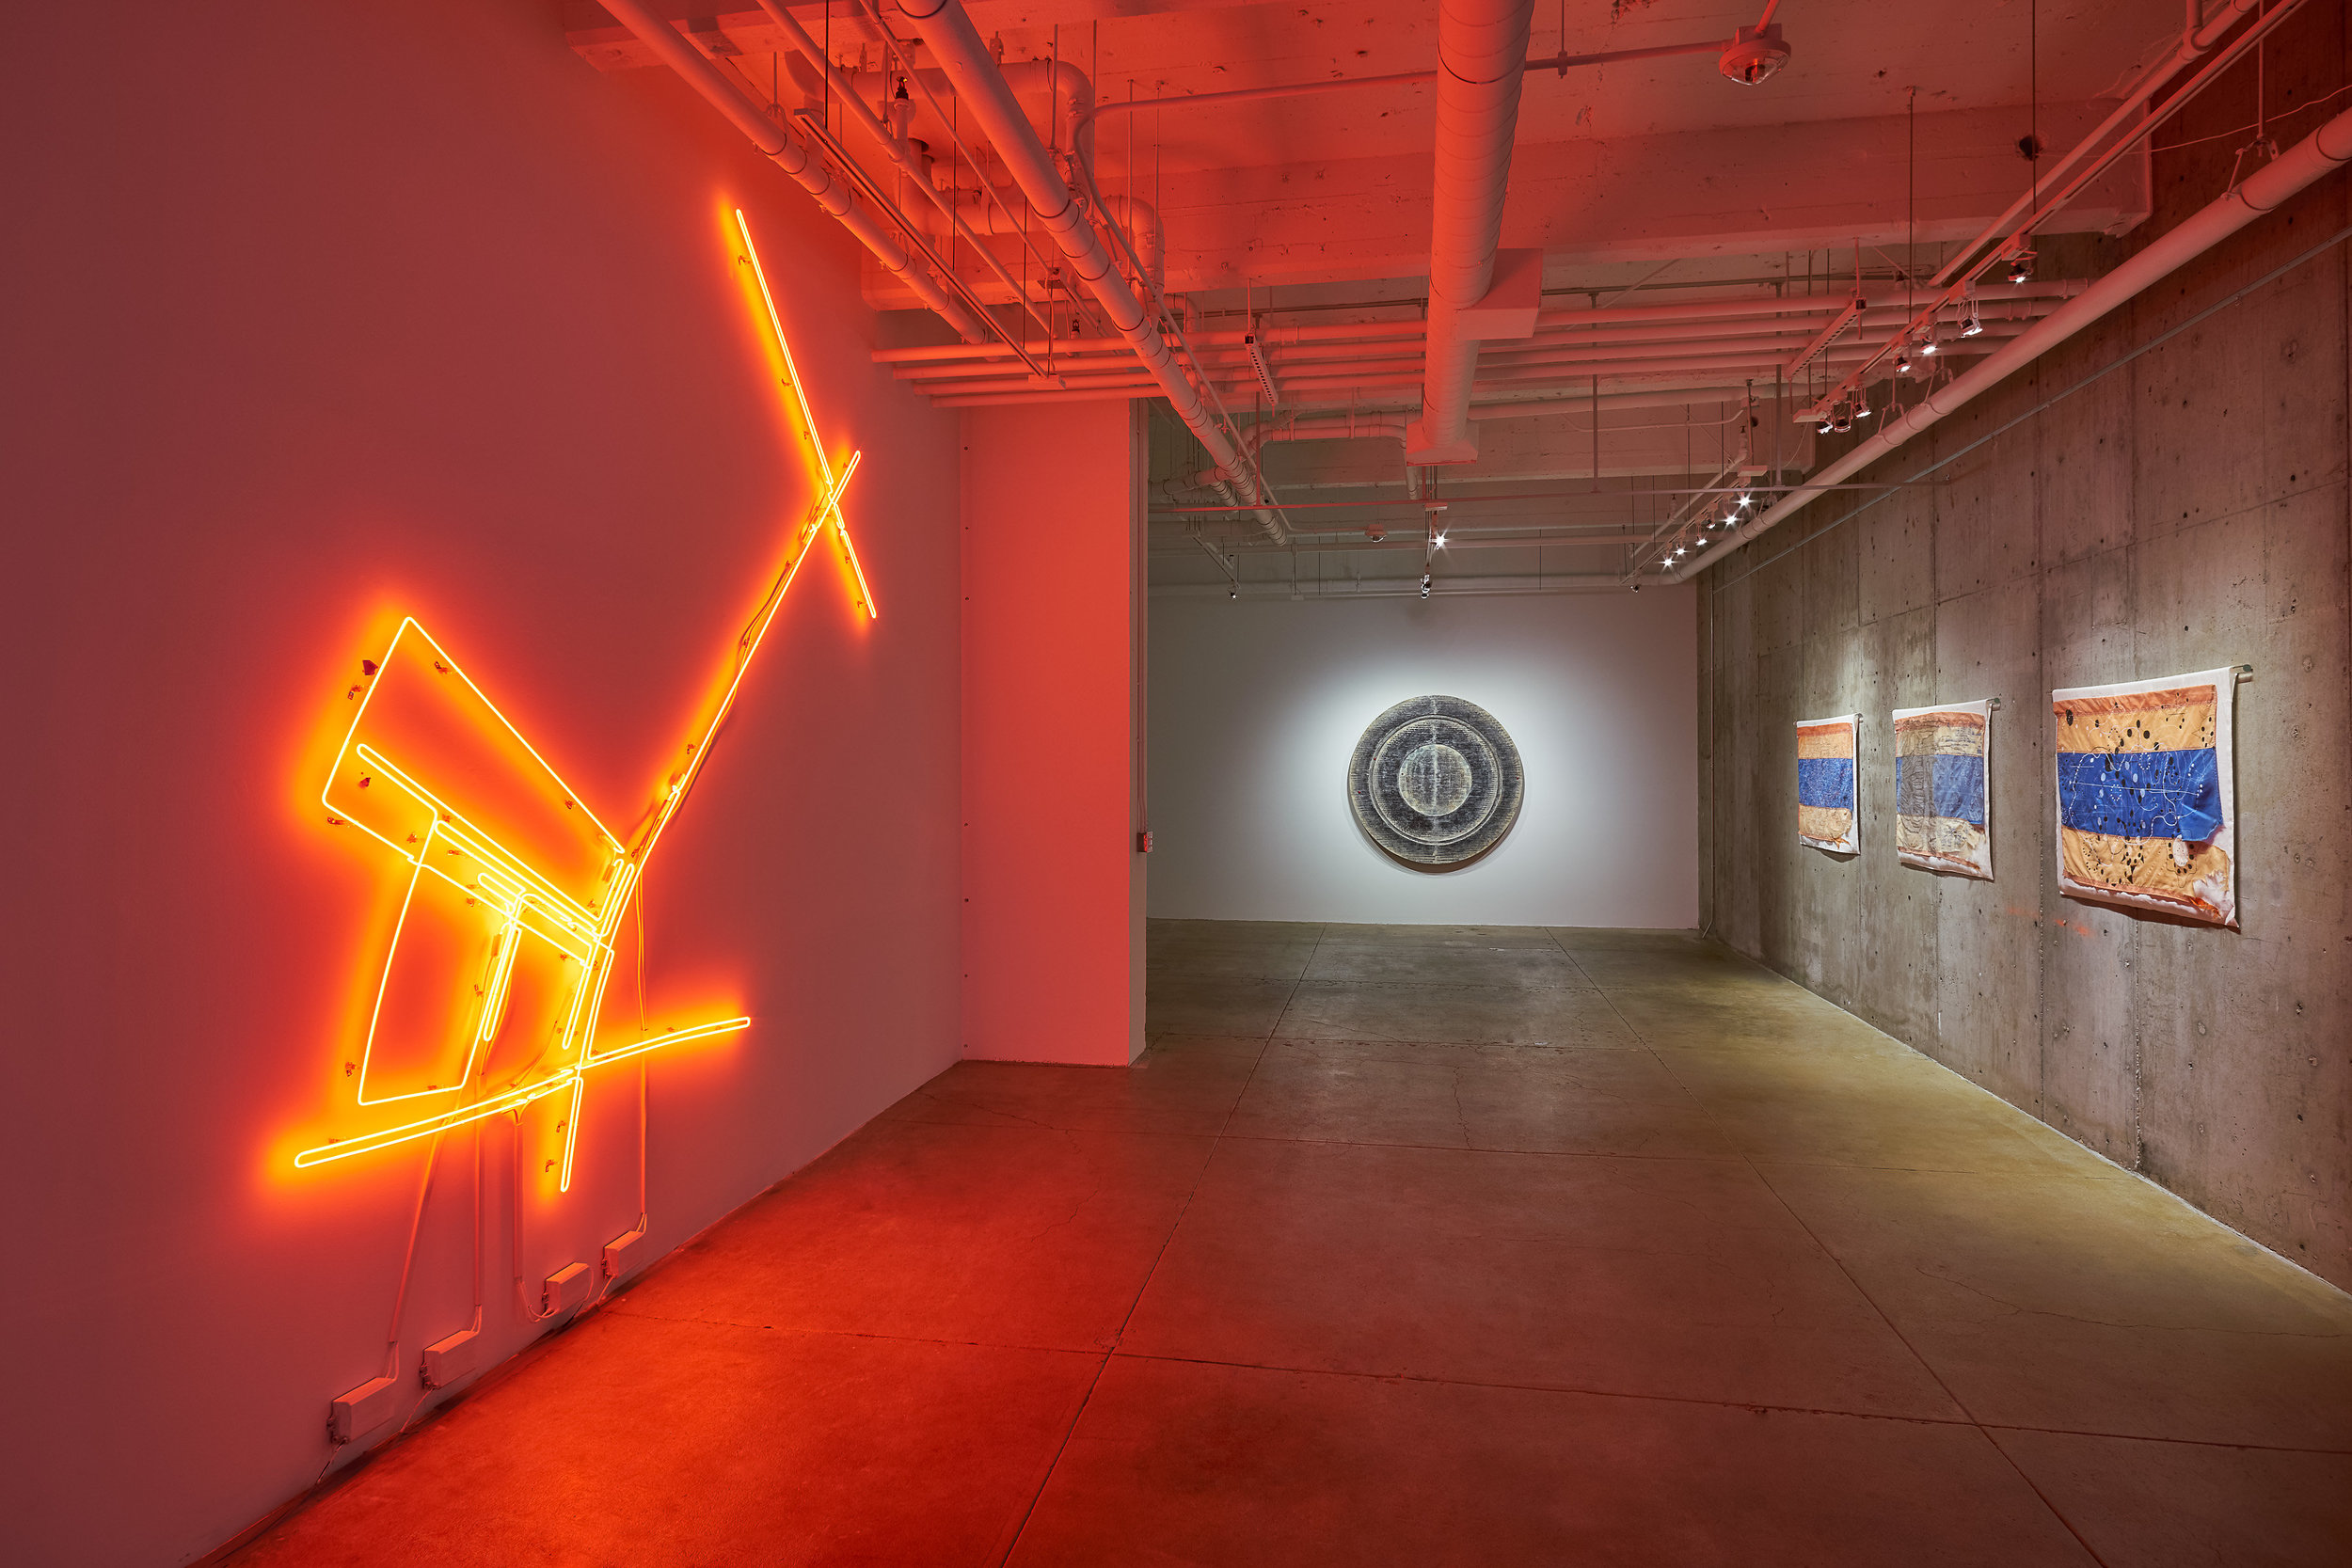 Exhibition documentation of Omar Mismar  The Path of Love #03 , 2013-2014, neon, 126 x 126 inches (left), Taraneh Hemami  Recounting , 2011, pigment and inkjet prints on paper and vellum, wax, wood panels, 66 inches diameter, 7 inches deep (center) and Guillermo Galindo Siguiendo  Los Pasos del Niño Perdido, 20 Miles East of Laredo , and  Cartografía del Espiritu/Cartography of the Spirit,  all 2017, acrylic on beacon flags used by humanitarian aid group Water Stations (right). Image courtesy of the artists and Gallery Wendi Norris, San Francisco.